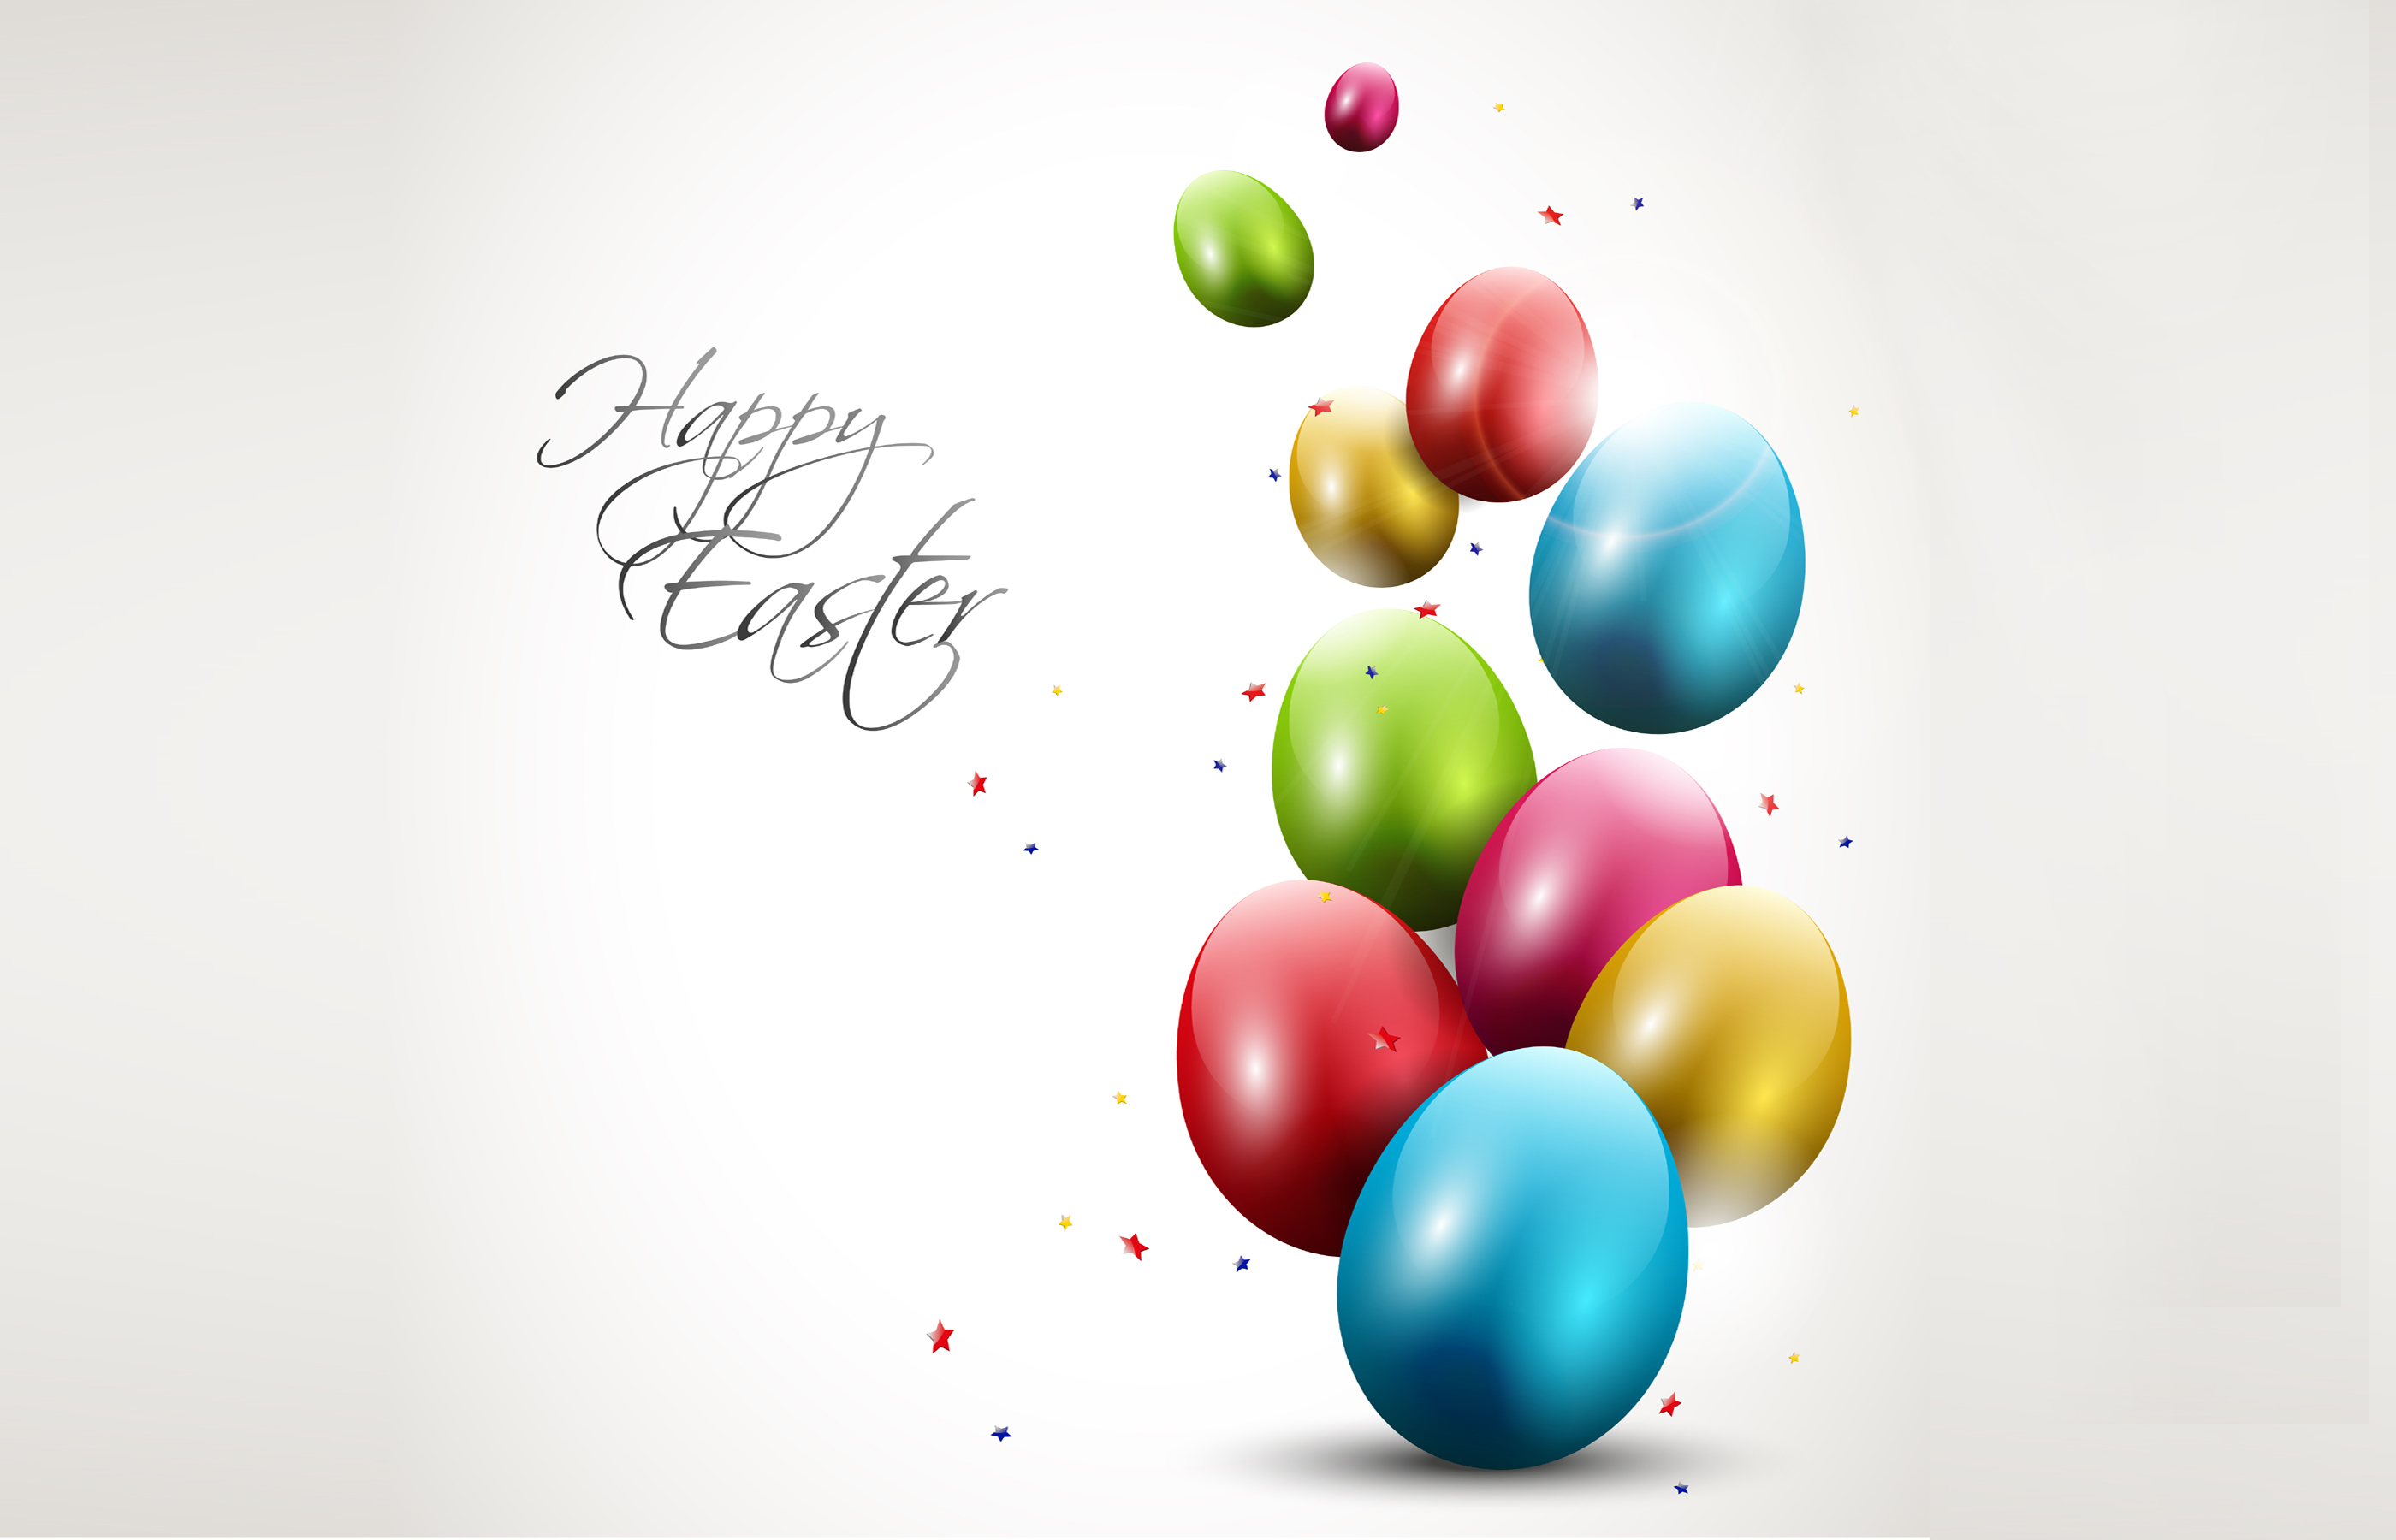 Happy Easter Images for Desktop Wallpapers Backgrounds Images Art 2800x1800